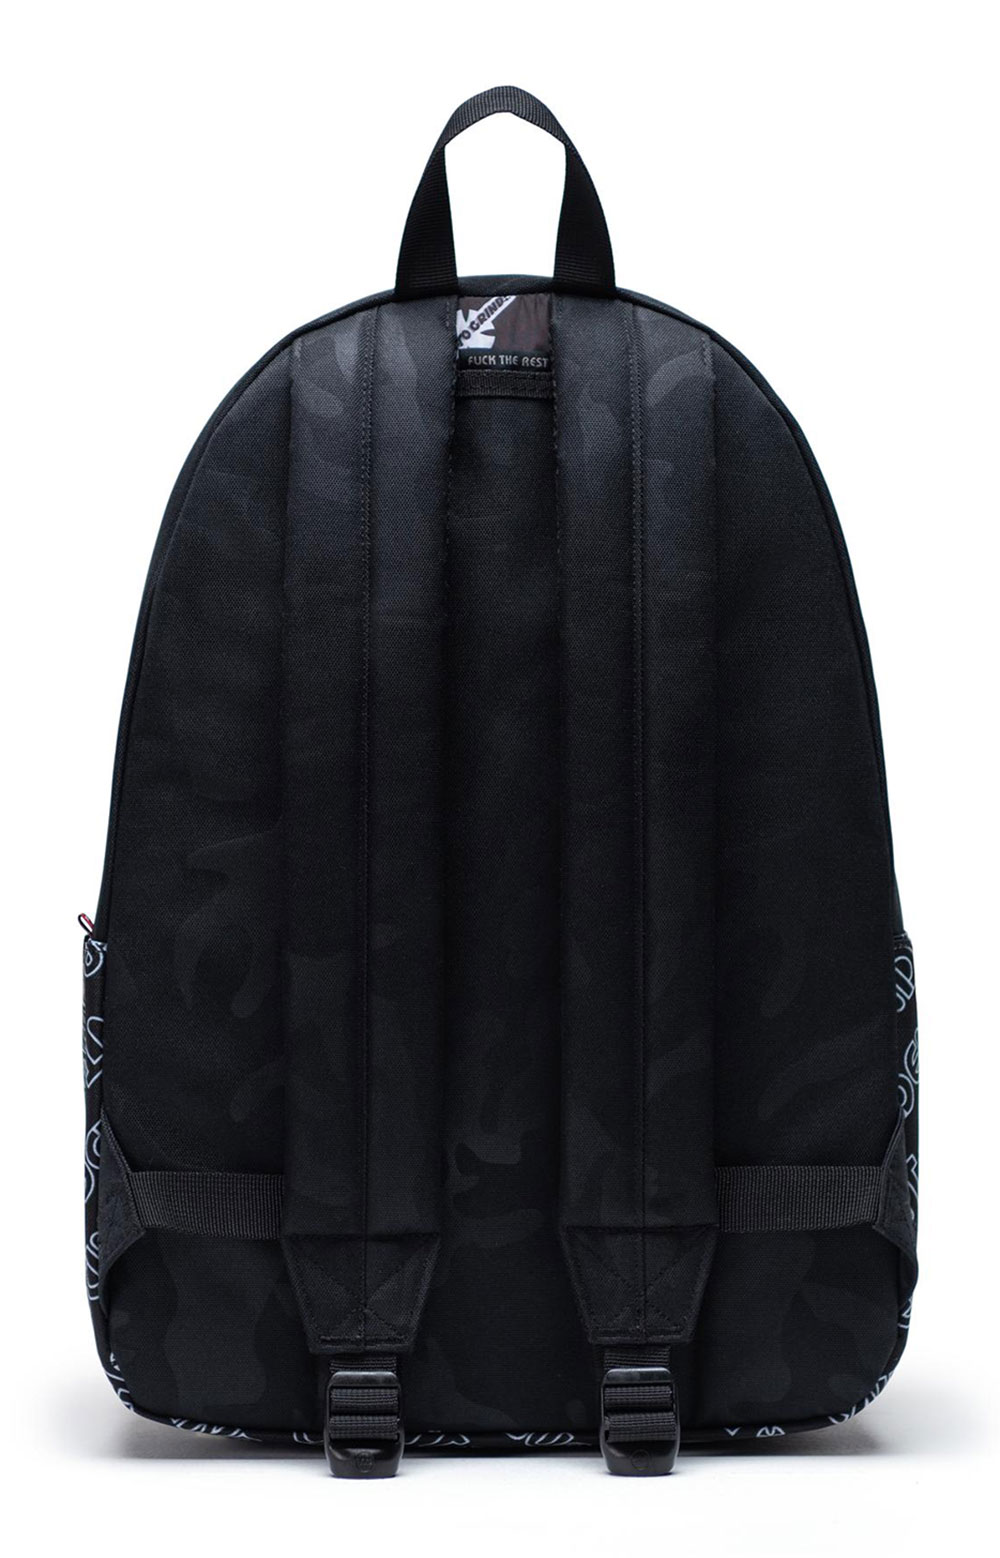 Classic Backpack XL - Black Camo/Independent Unified Black 5